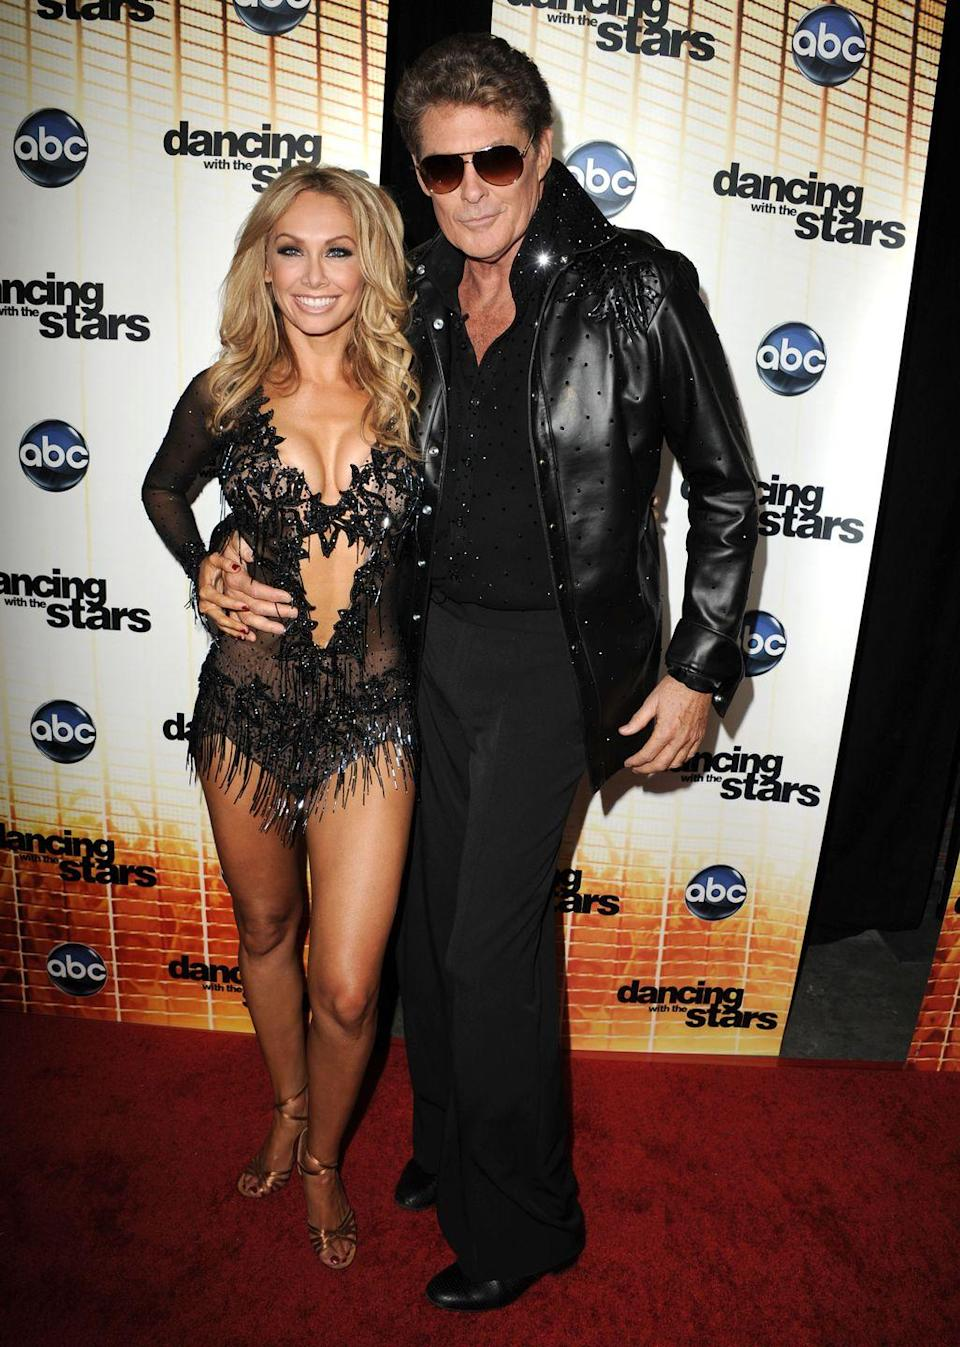 <p>Kym Johnson and David Hasselhoff only made it to week 1 during season 11, but apparently that was all his partner needed. After the pair left the ballroom for good, rumors began circulating that Kym couldn't put up with Hasselhoff's diva-like behavior when it came to scheduling rehearsals. </p>